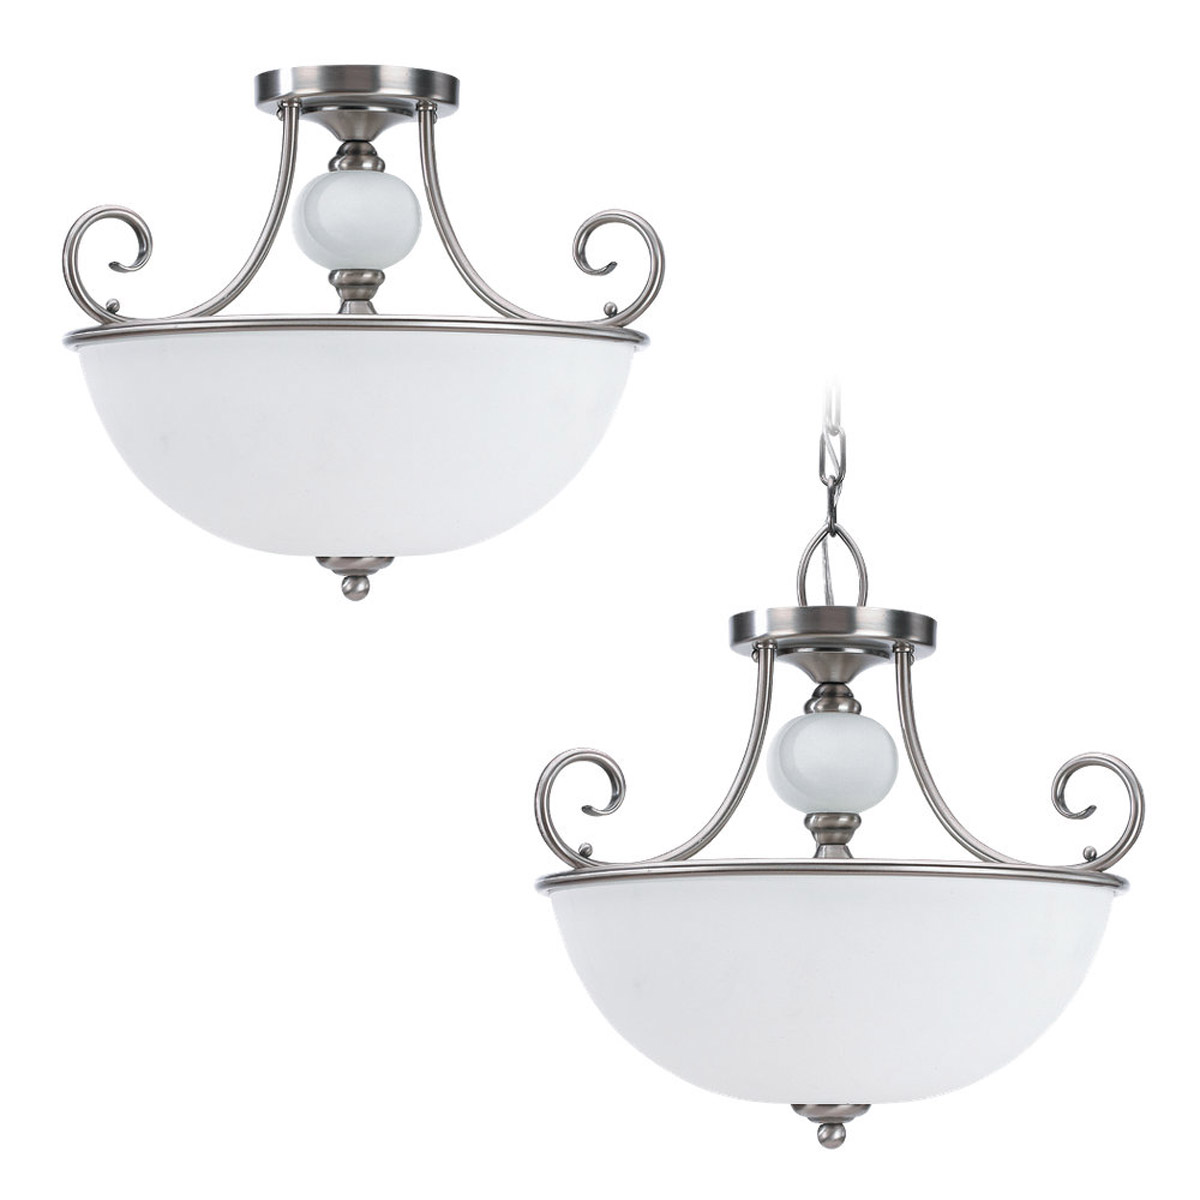 Sea Gull Lighting Montclaire 3 Light Pendant Convertible in Antique Brushed Nickel 51105-965 photo